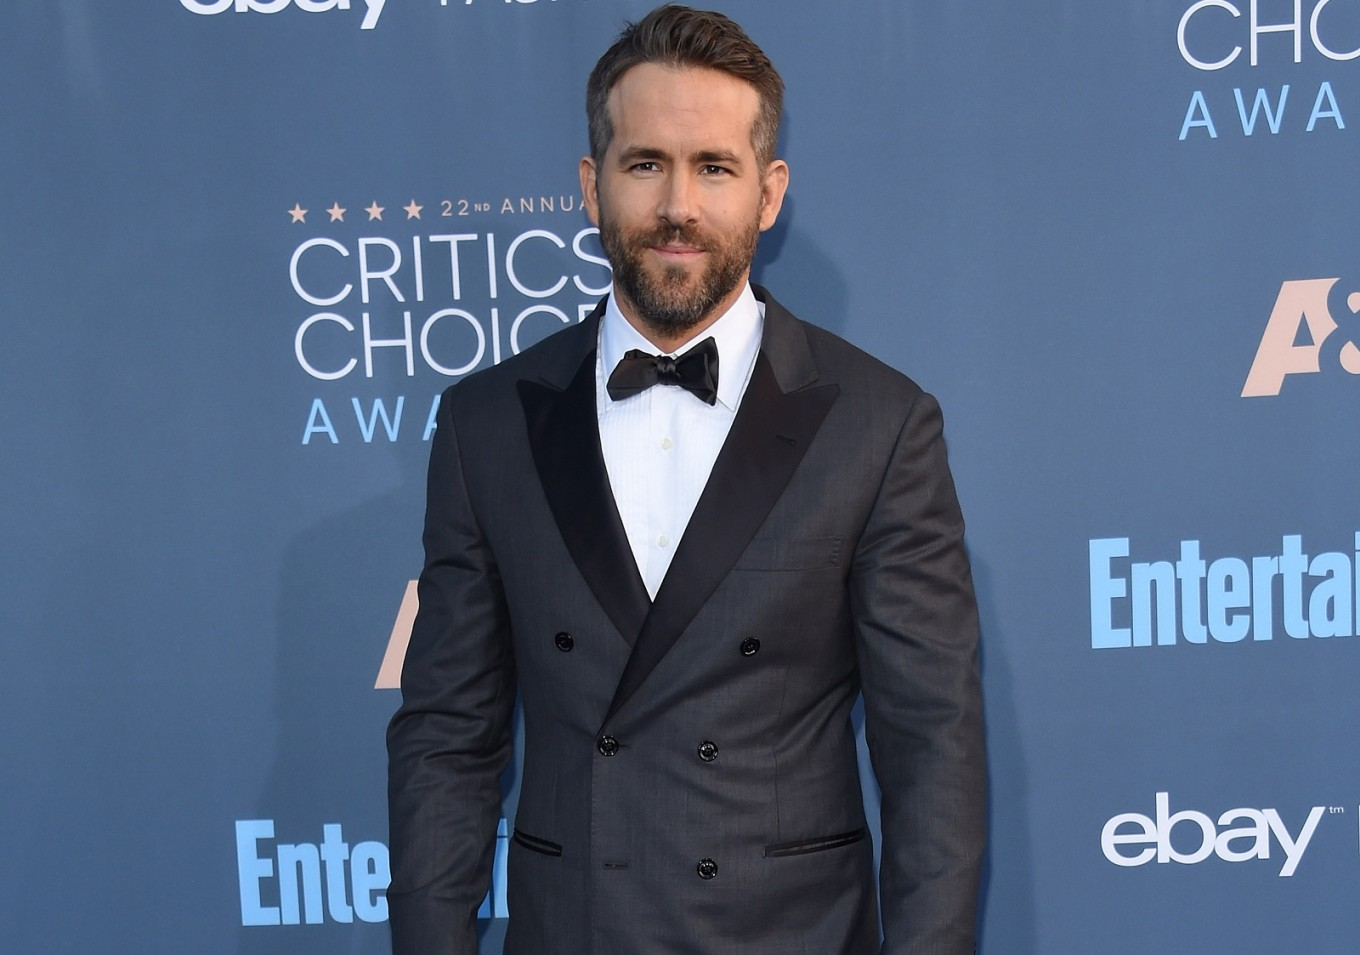 Ryan Reynolds to star in, produce action comedy 'Shotgun Wedding'